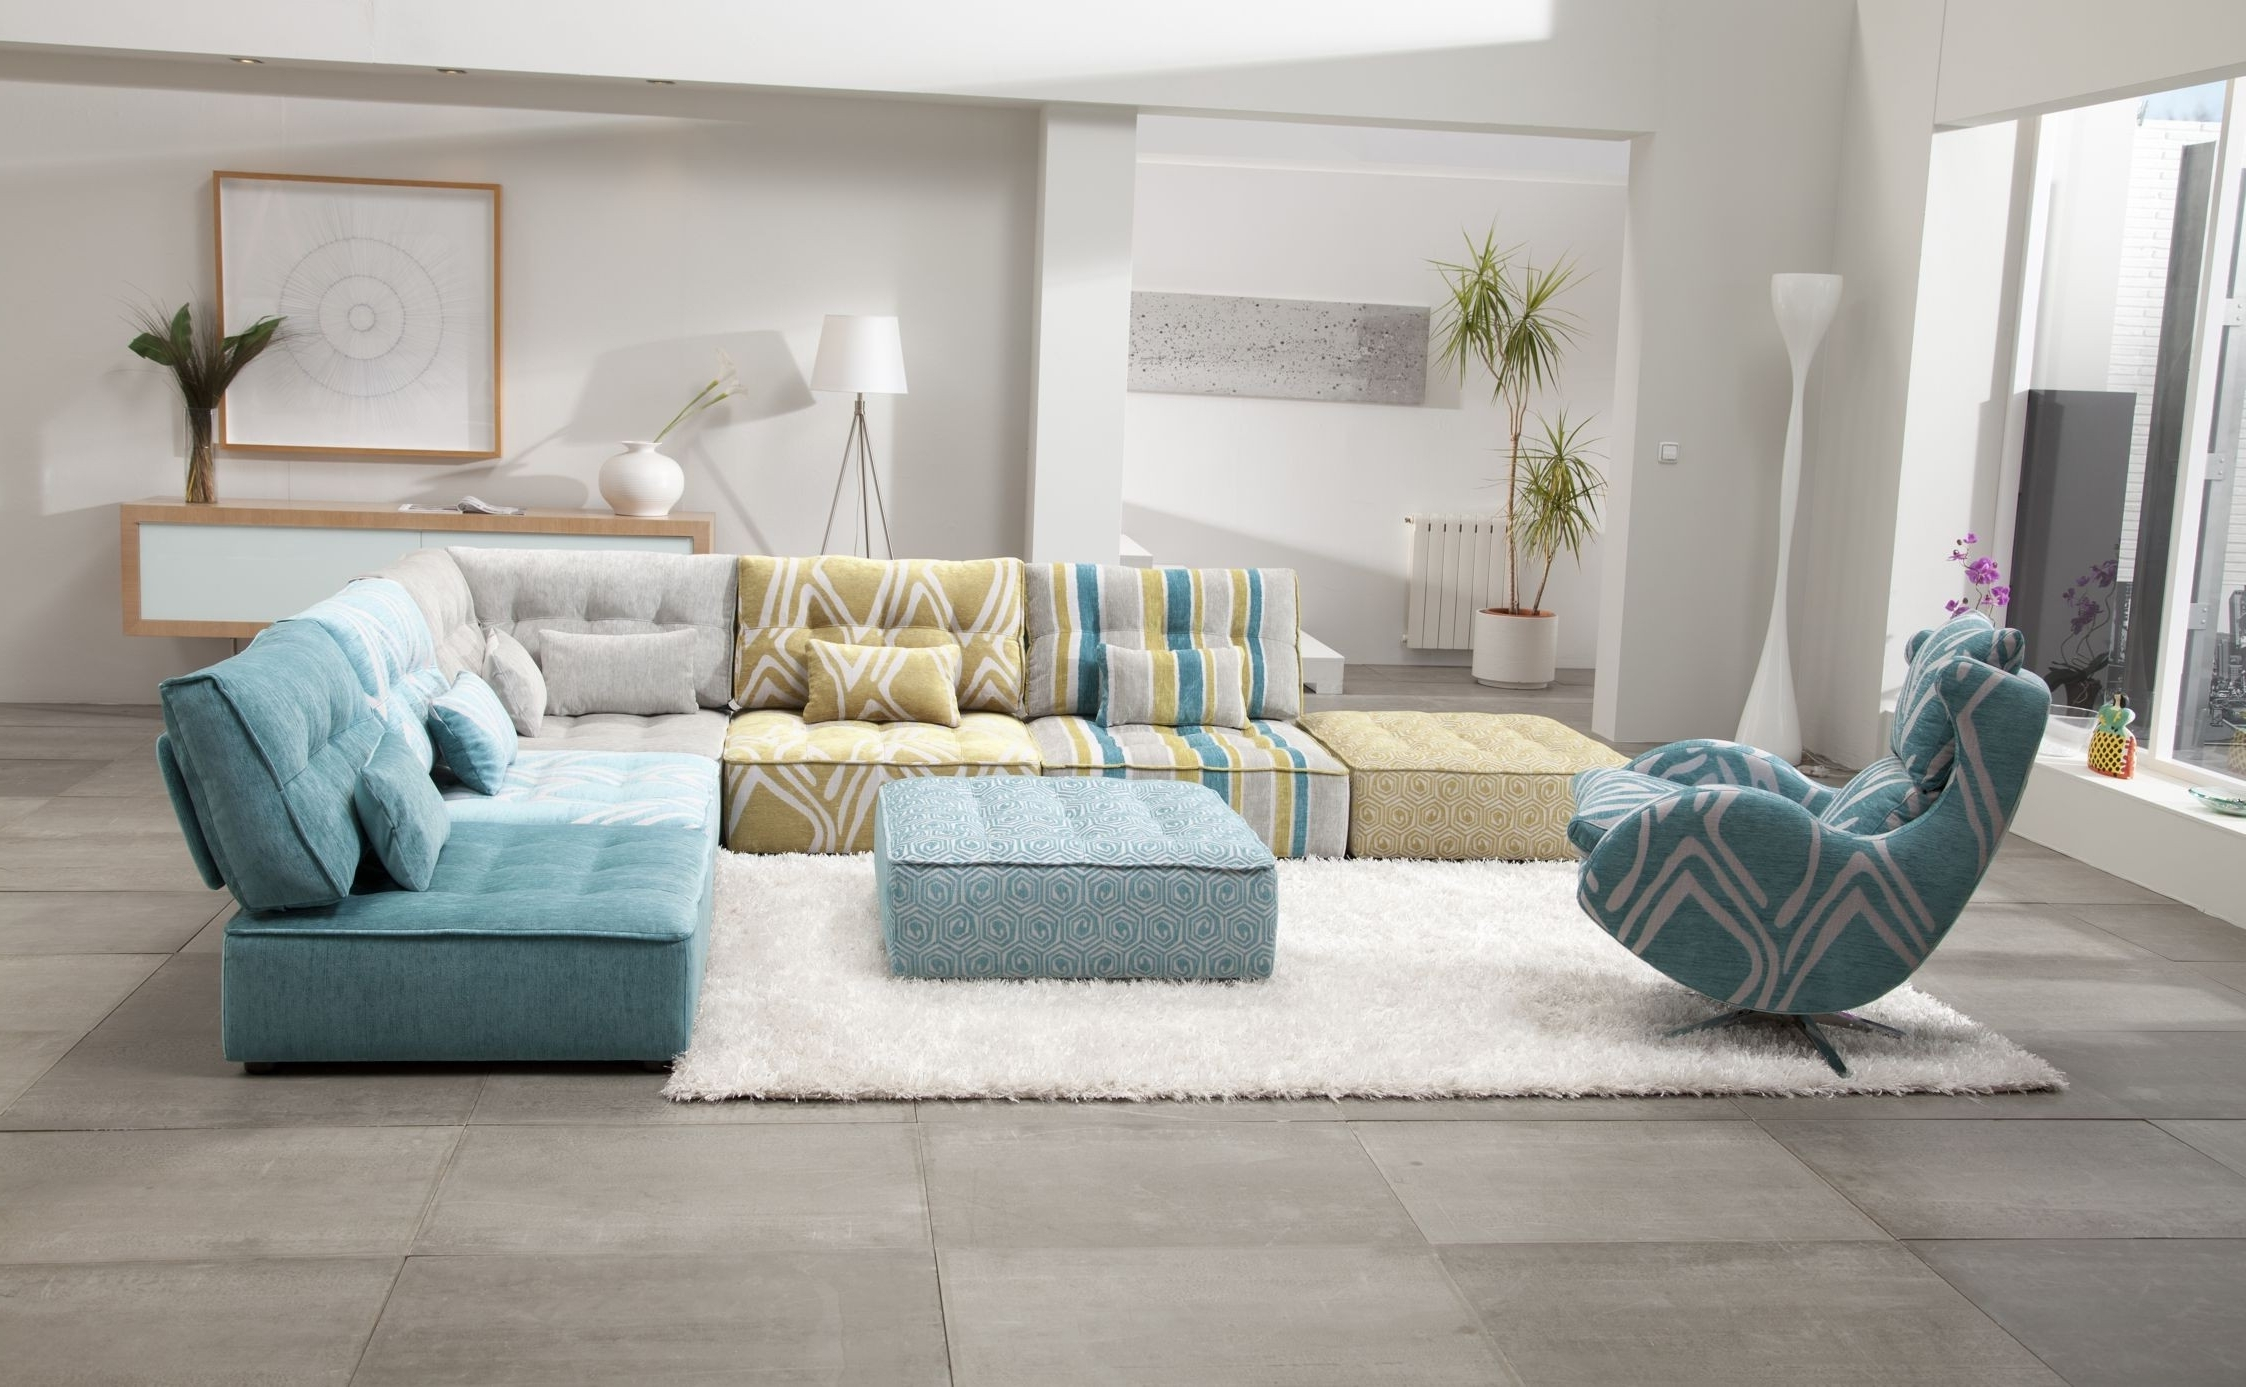 2019 Sectional Sofas From Europe Throughout Arianne Modern Modular Sectional Sofa (View 9 of 20)